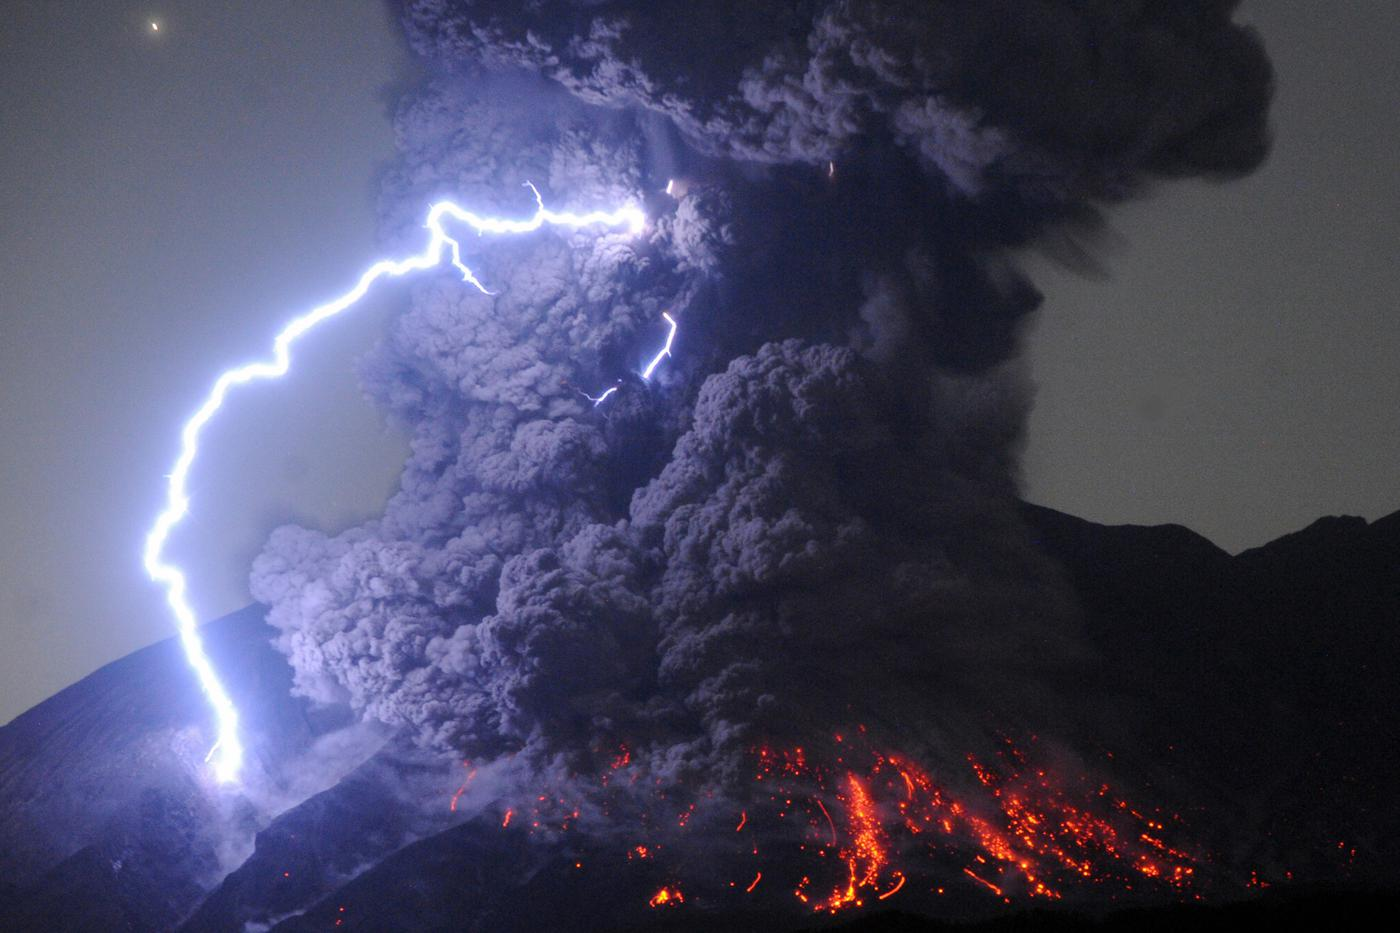 TARUMIZU, JAPAN - JULY 26: (CHINA OUT, SOUTH KOREA OUT) A dirty thunderstorm occurs over Mount Sakurajima as the volcano erupts violently at 12:03 am on July 26, 2016 in Tarumizu, Kagoshima, Japan. The eruption occurred at the mountain's Showa crater. This is the first time that the active volcano in southern Kyushu has spewed out a smokestack that high since an eruption on August 18, 2013, according to the Kagoshima Meteorological Office. (Photo by The Asahi Shimbun via Getty Images)